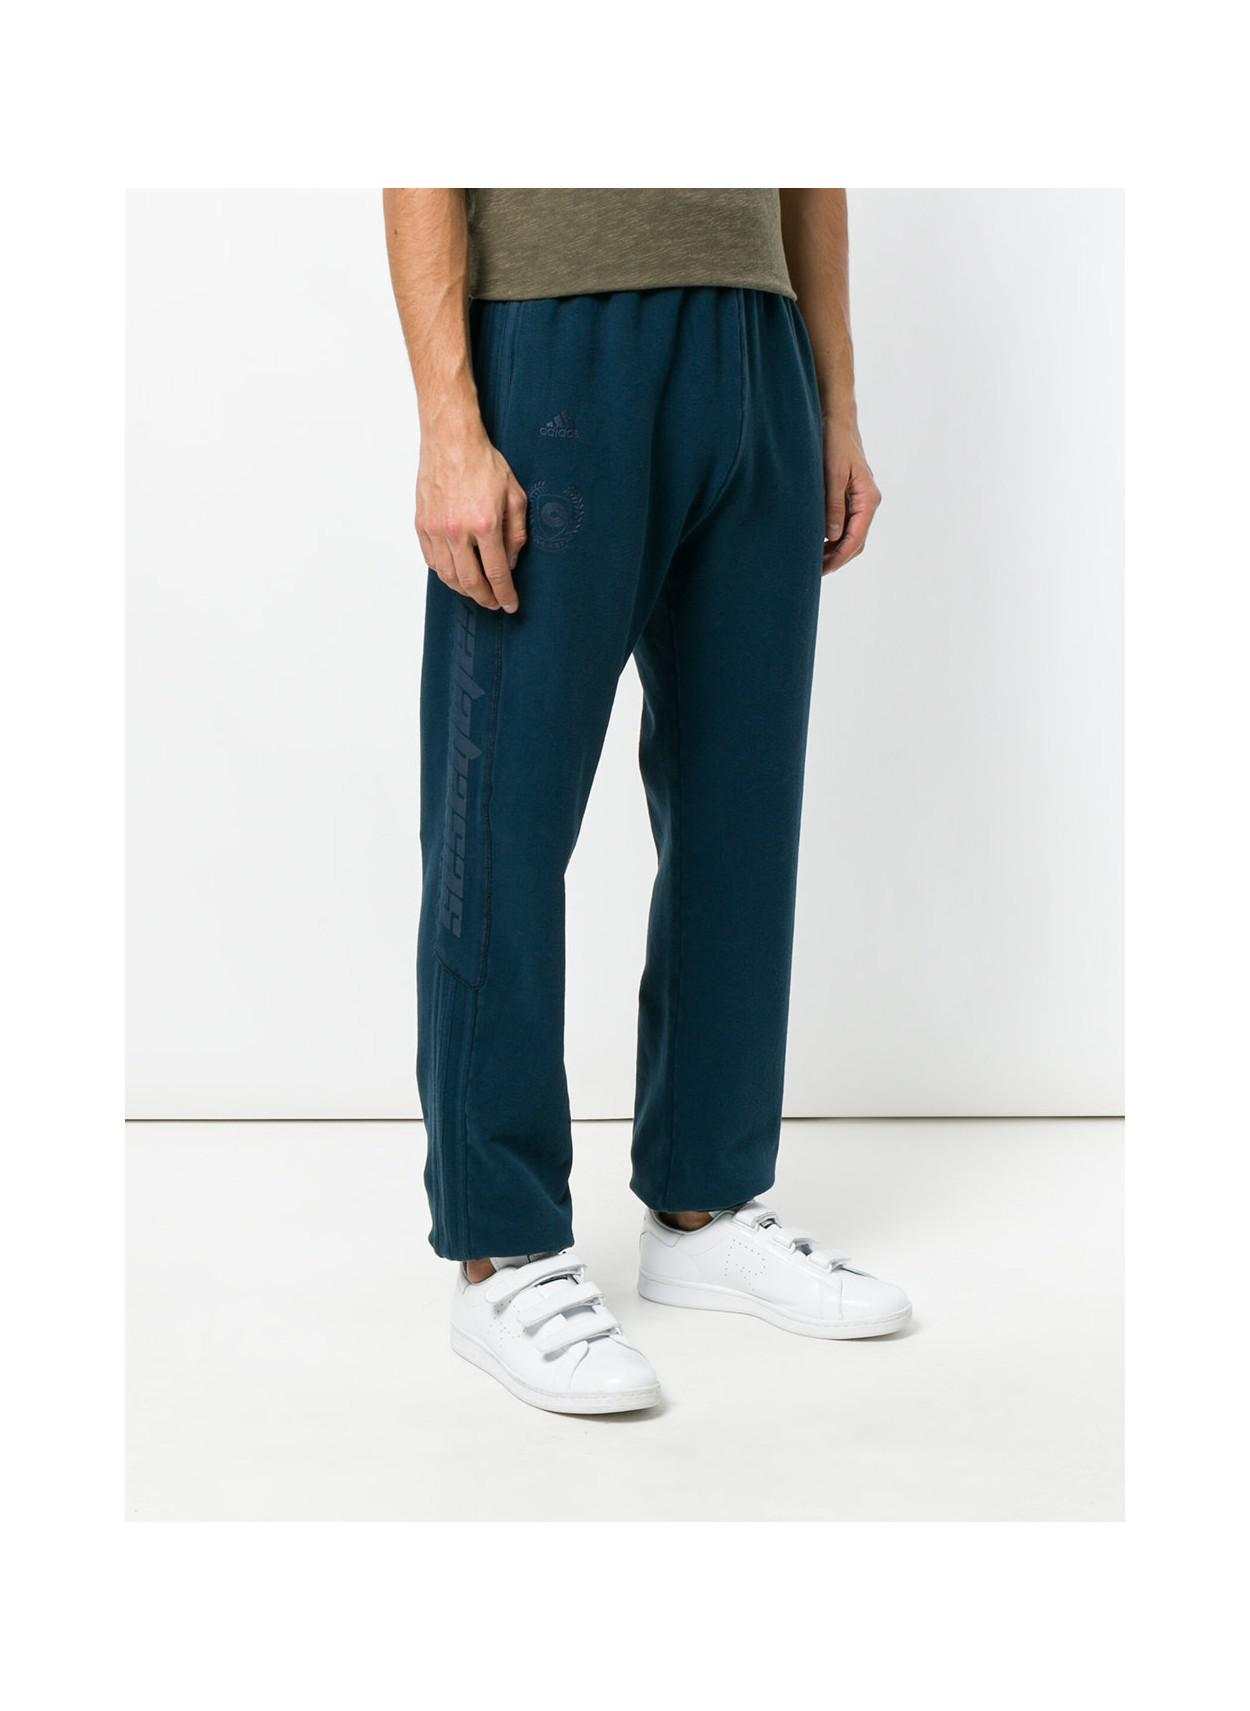 f7a8accb09818 Lyst - Yeezy Calabasas Track Pants Luna in Black for Men